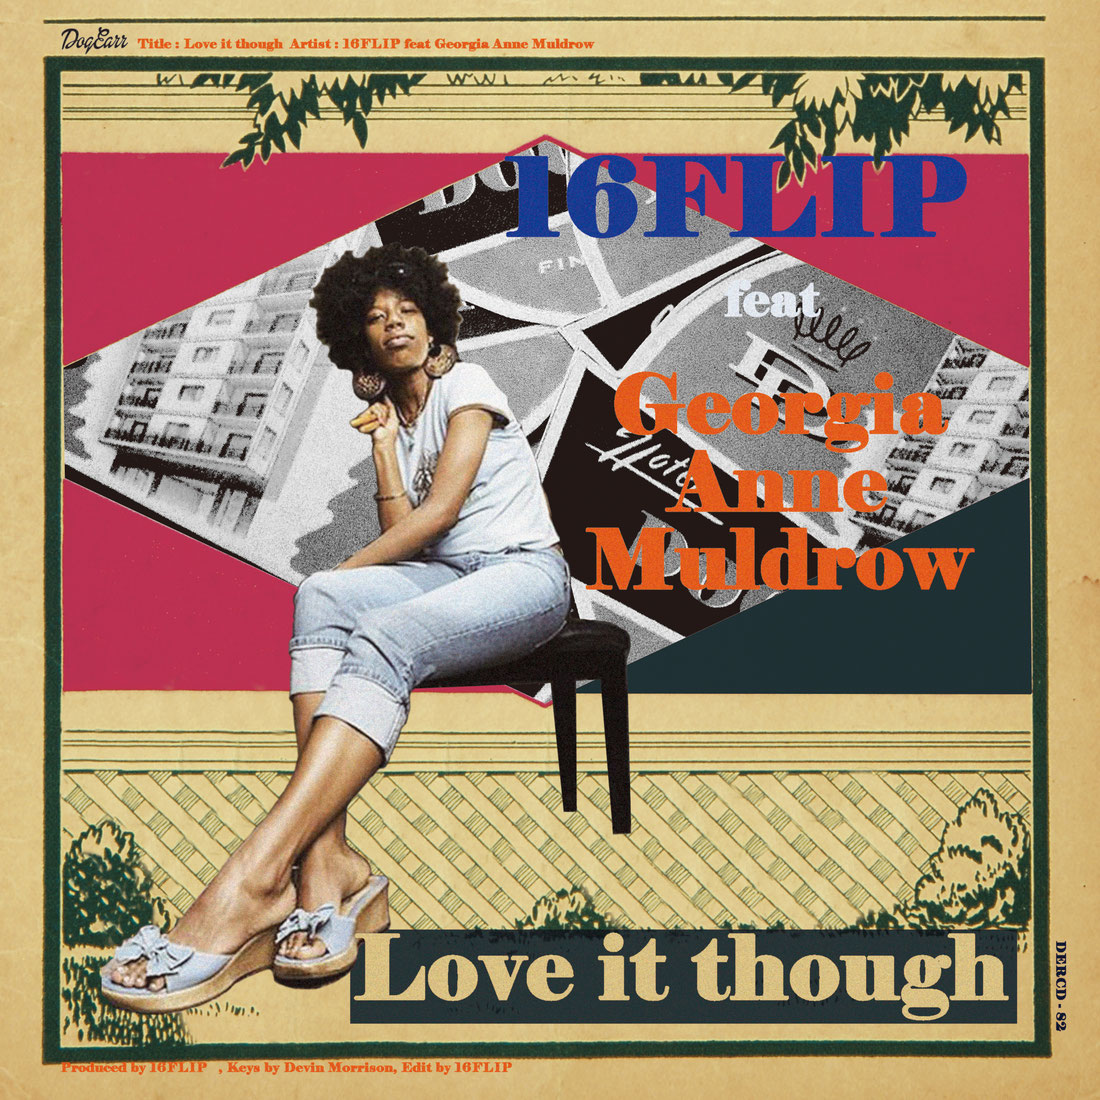 Listen: 16FLIP – Love It Though (ft. Georgia Anne Muldrow)